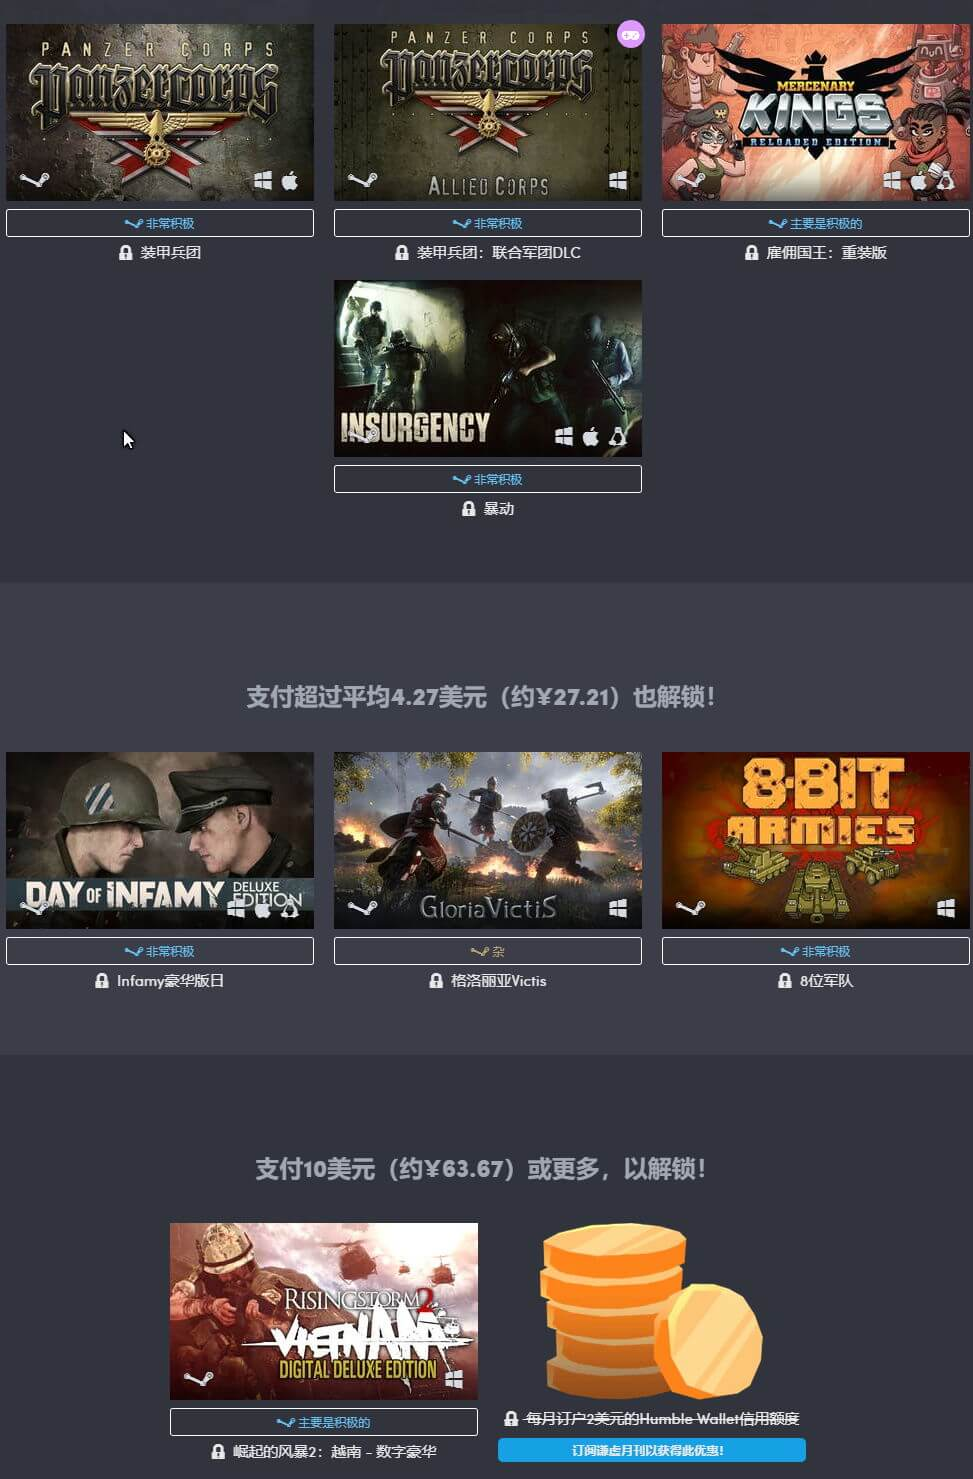 stegameskins 2018.05.10 14h10m53s 009 Chrome Legacy Window - humblebundle卑微的战争Gamez Bundle